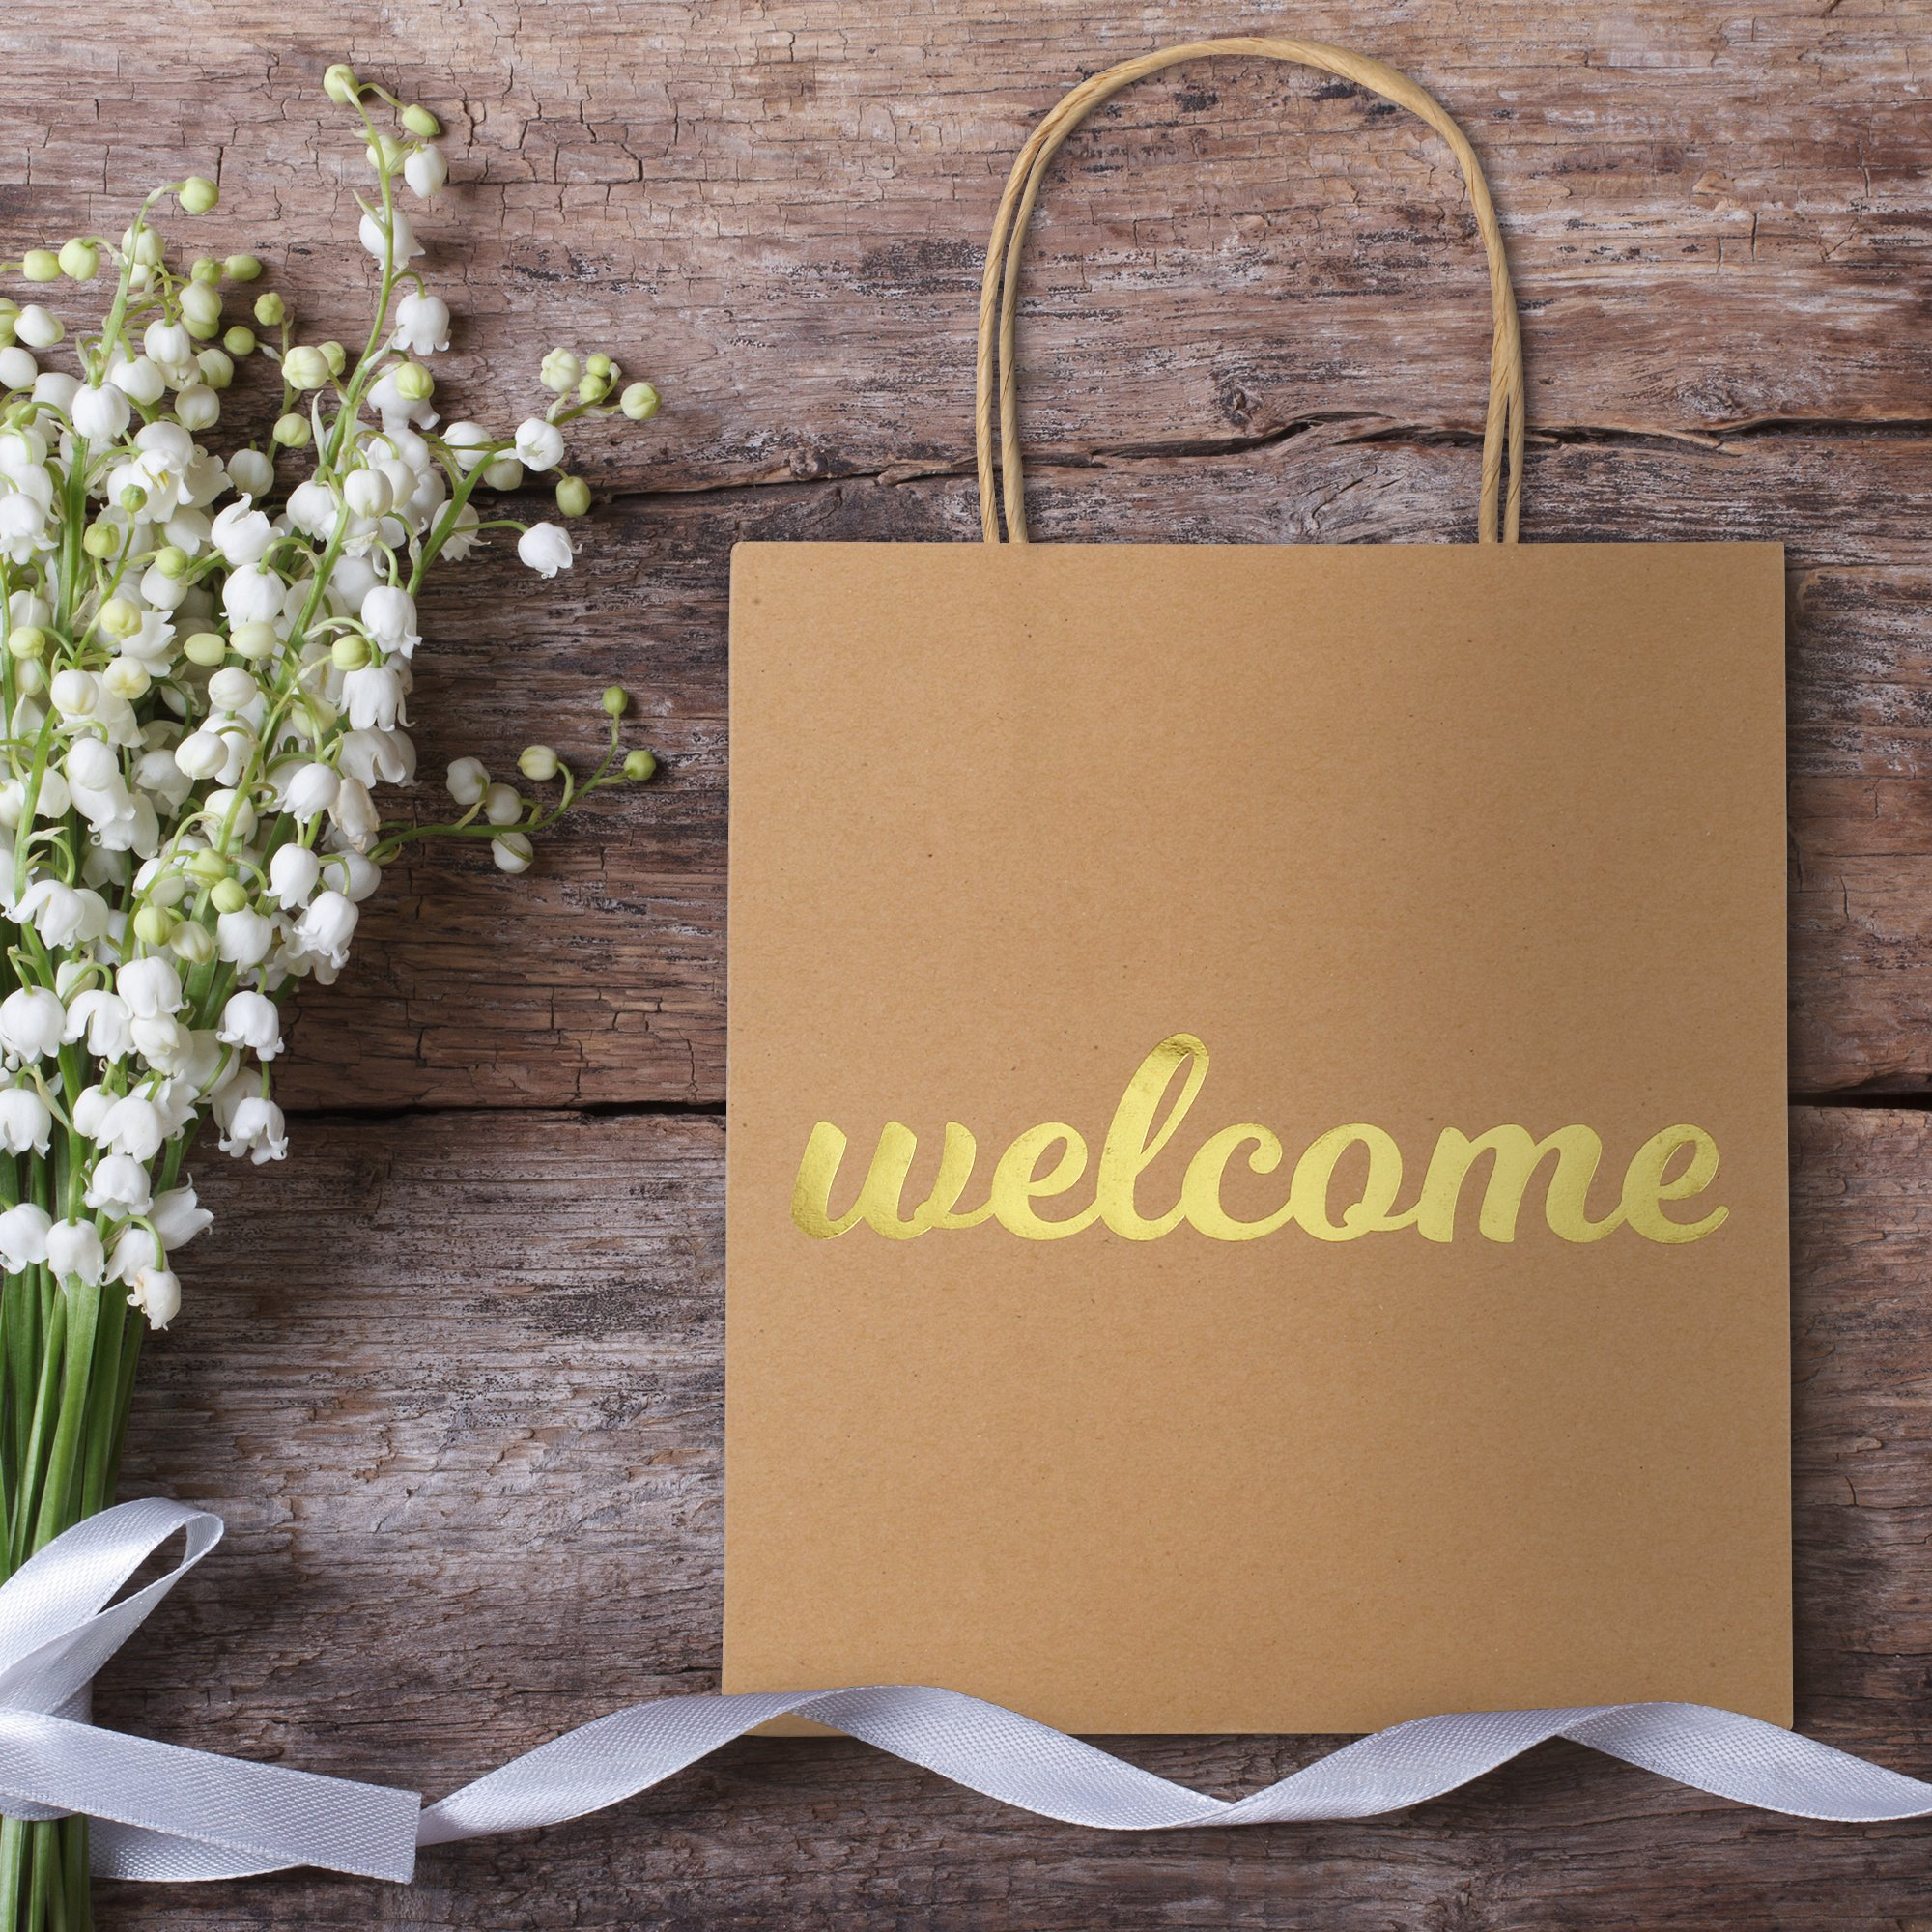 Welcome Bags for Wedding Guests - High Quality Kraft Paper Bags Bulk Perfect as Wedding Welcome Bags for Hotel Guests - Excellent to Present Wedding Favors for Guests (10-Pack)